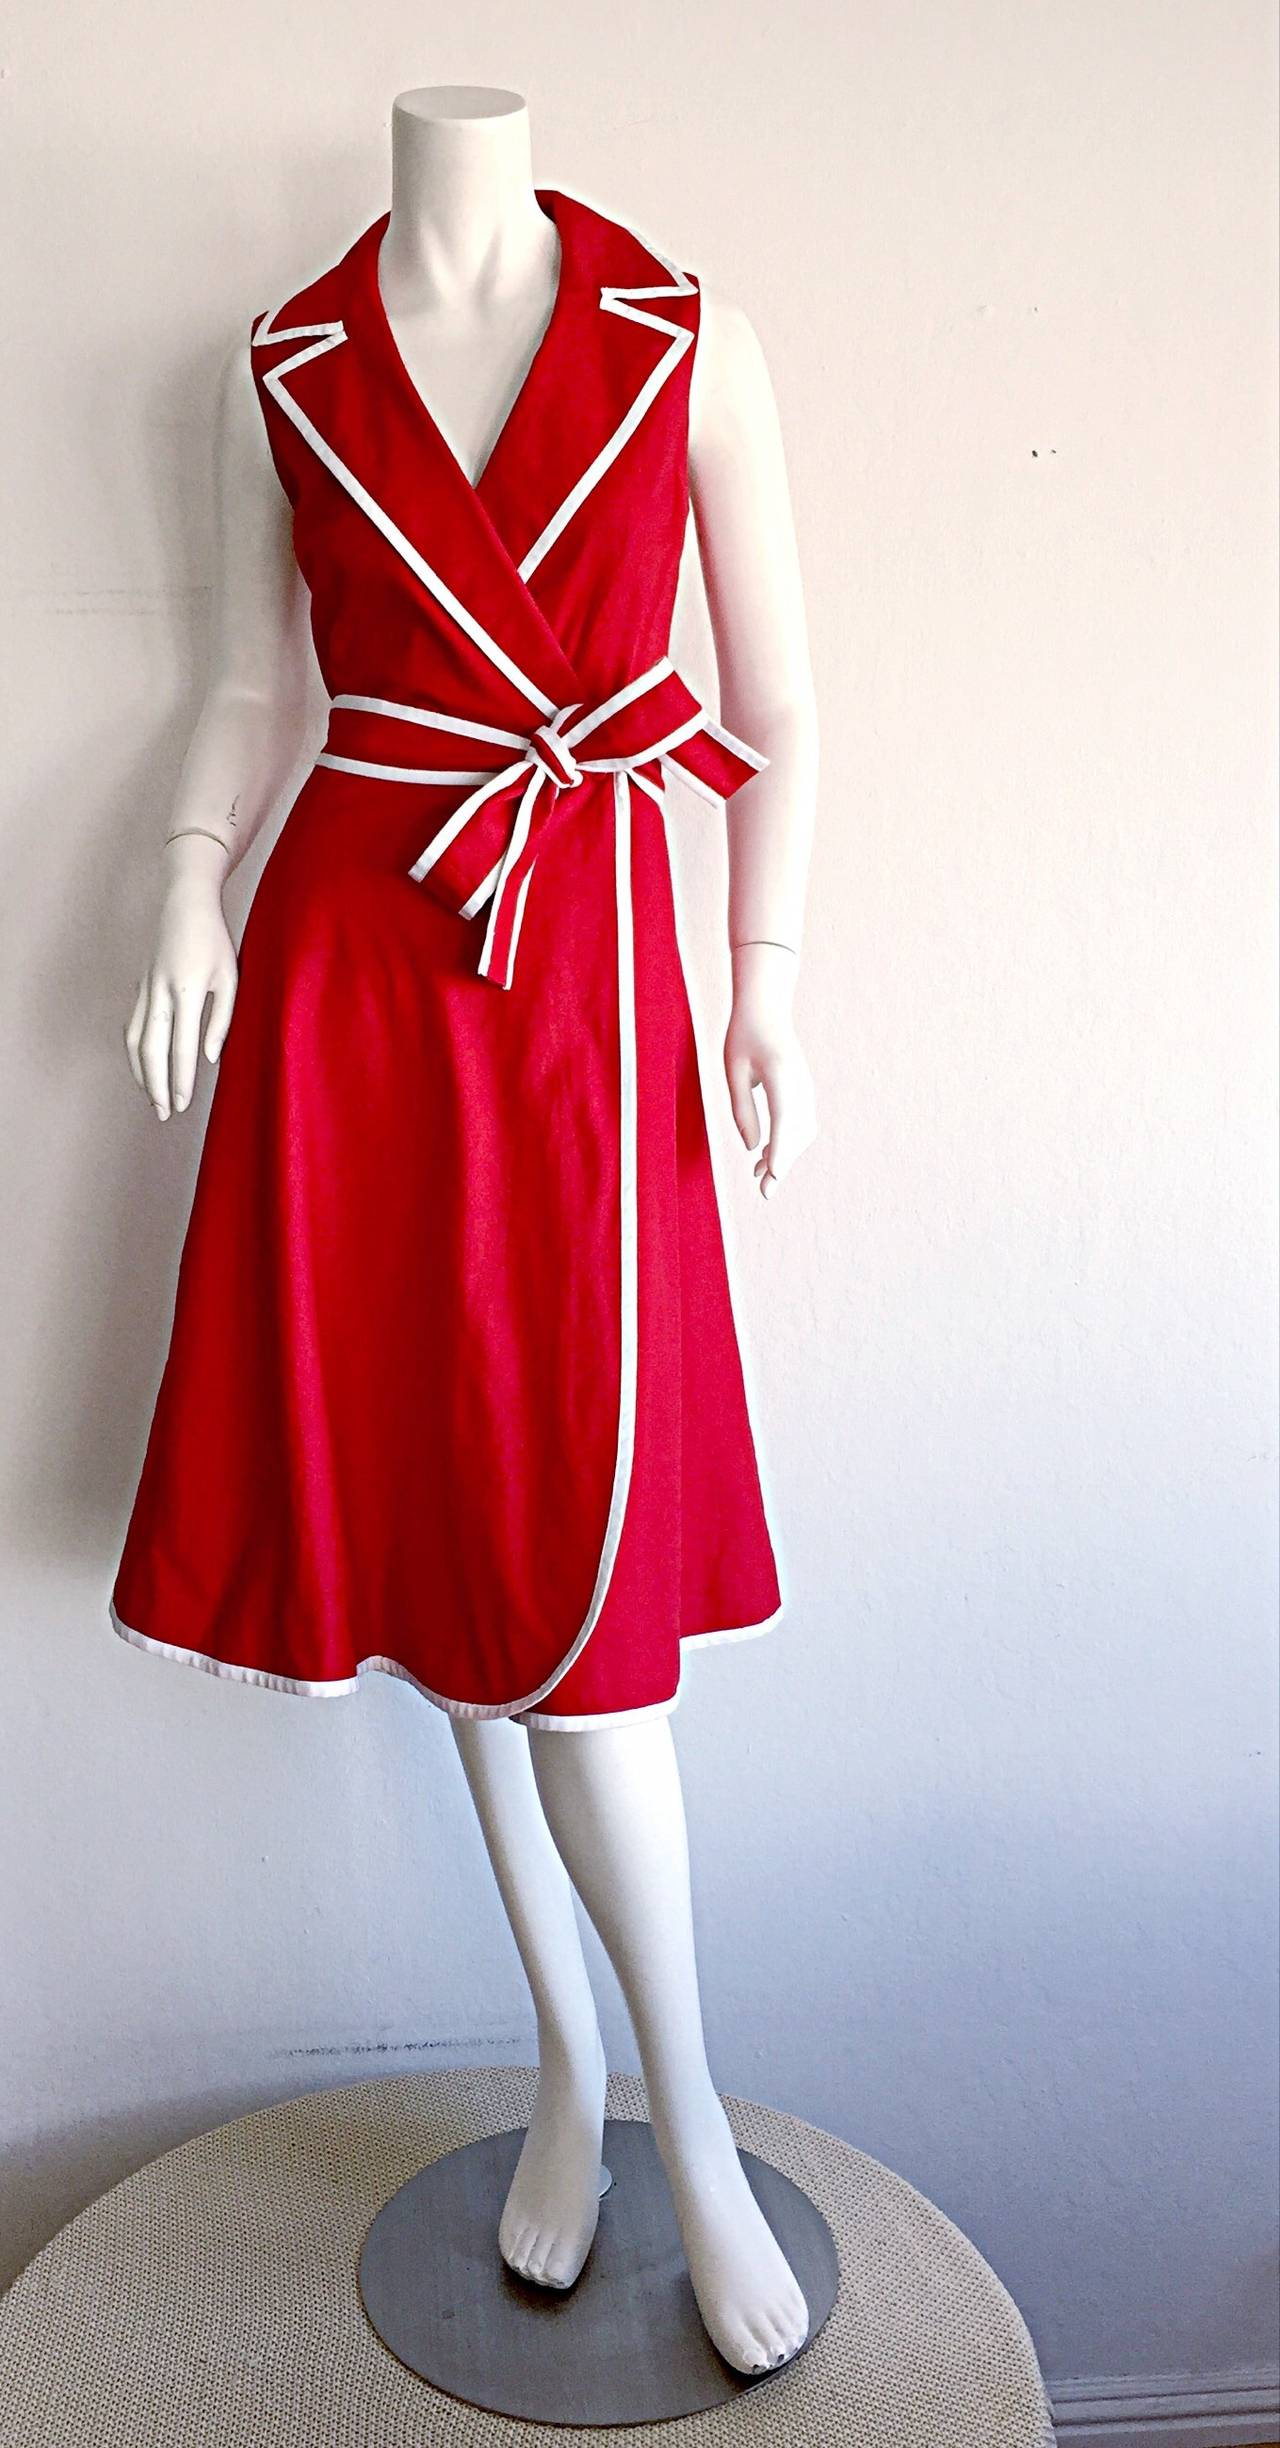 Sweet 90s Vintage Neiman Marcus Red 50s Rockabilly Inspired Nautical Shirt Dress In Excellent Condition For Sale In San Francisco, CA